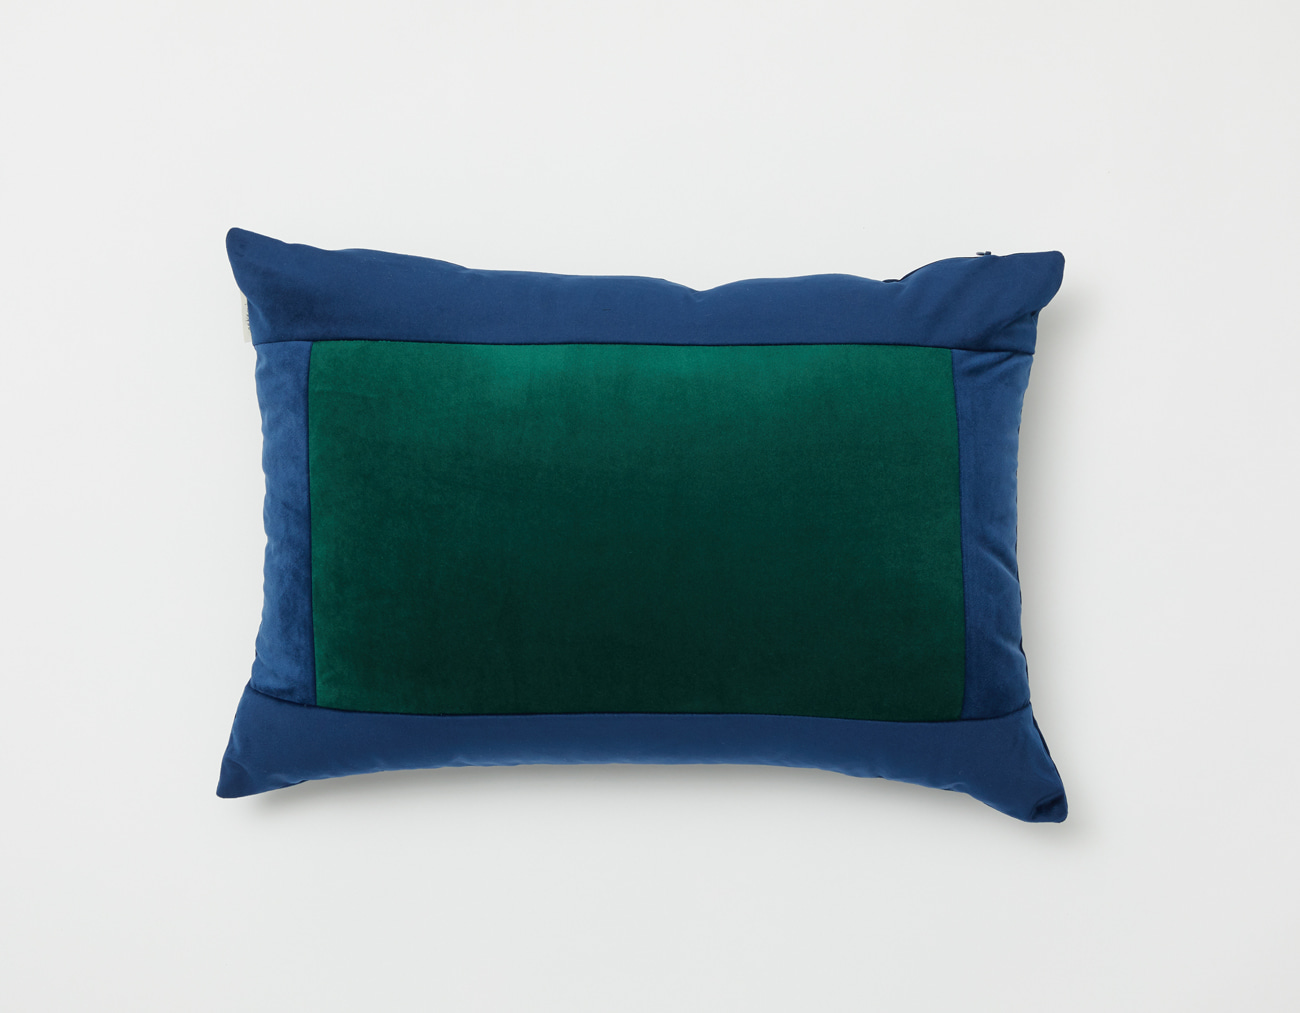 SQUARE VELVET CUSHION_NAVY/GREEN